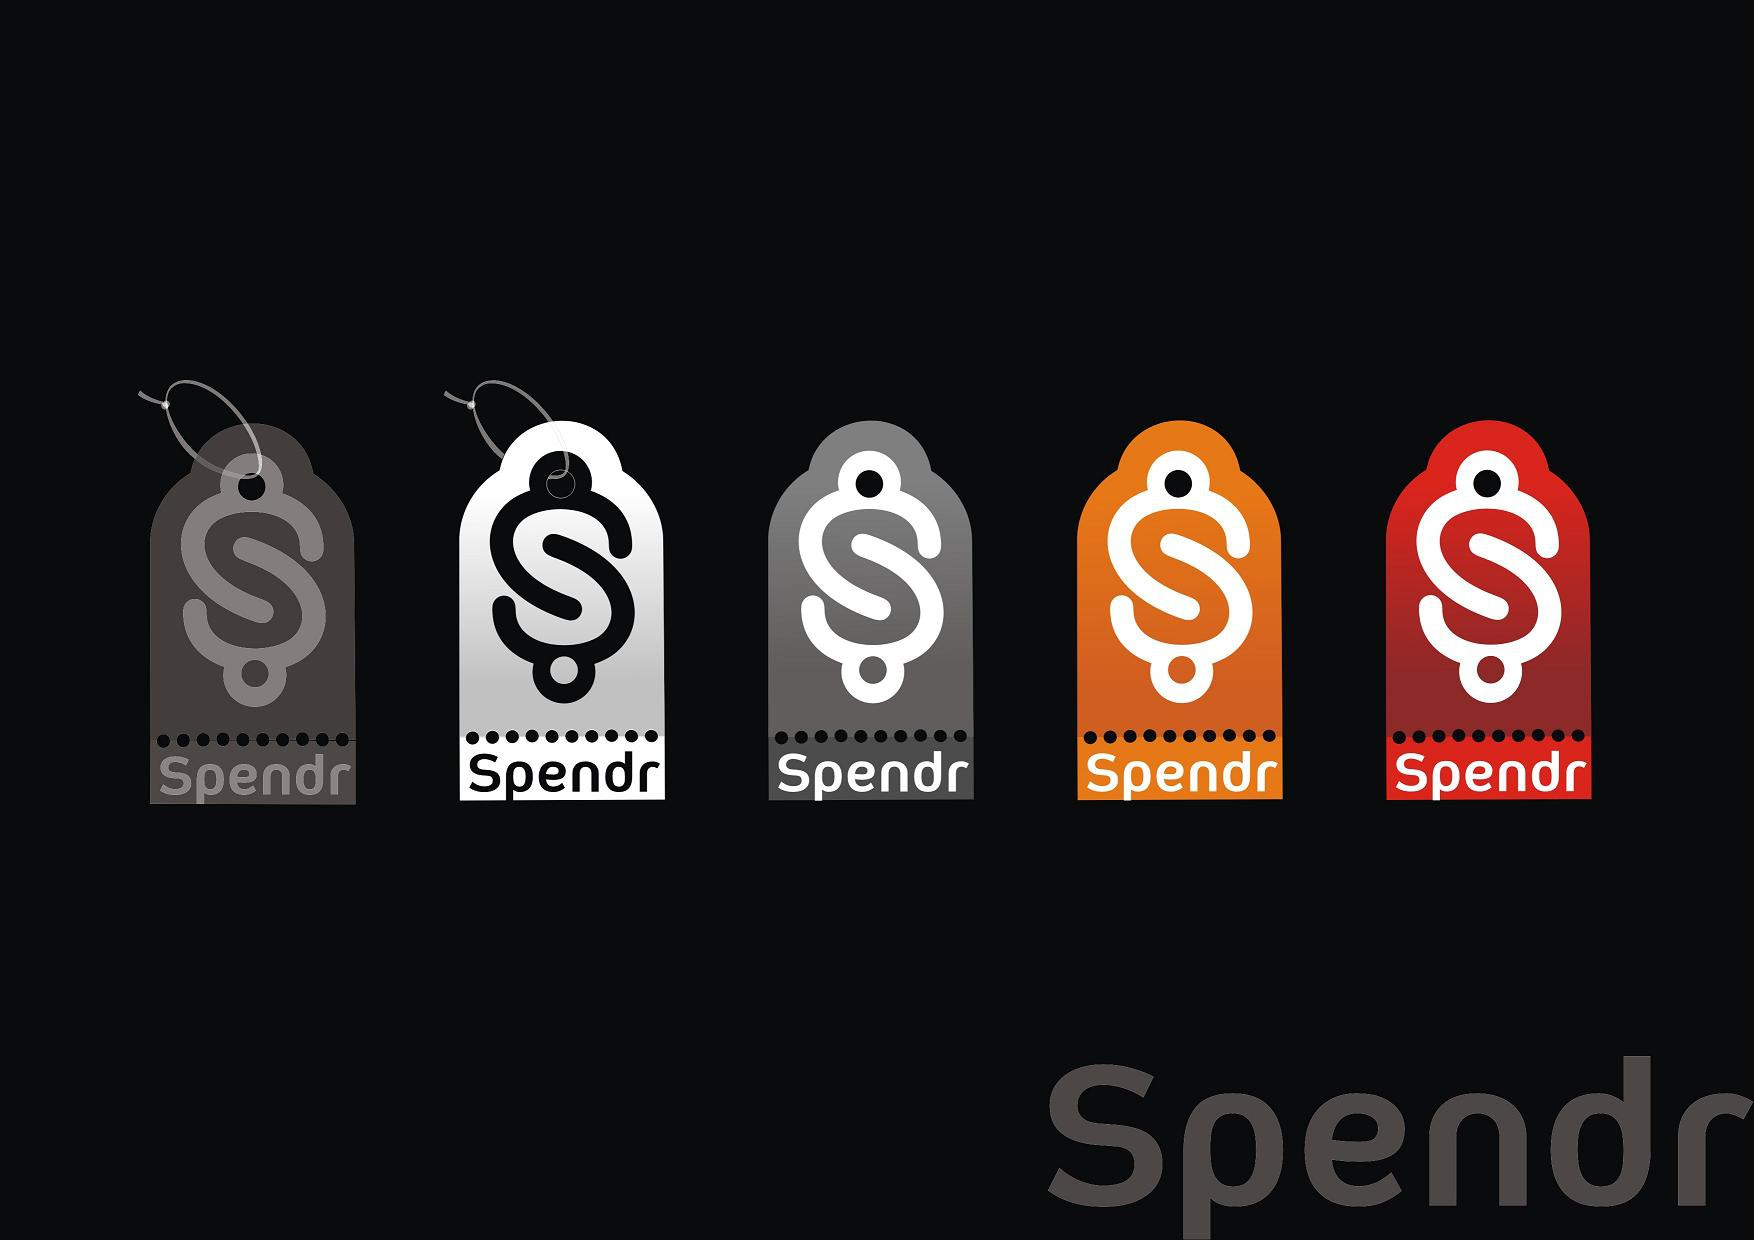 Spendr - Design the logo for the future of mobile shopping